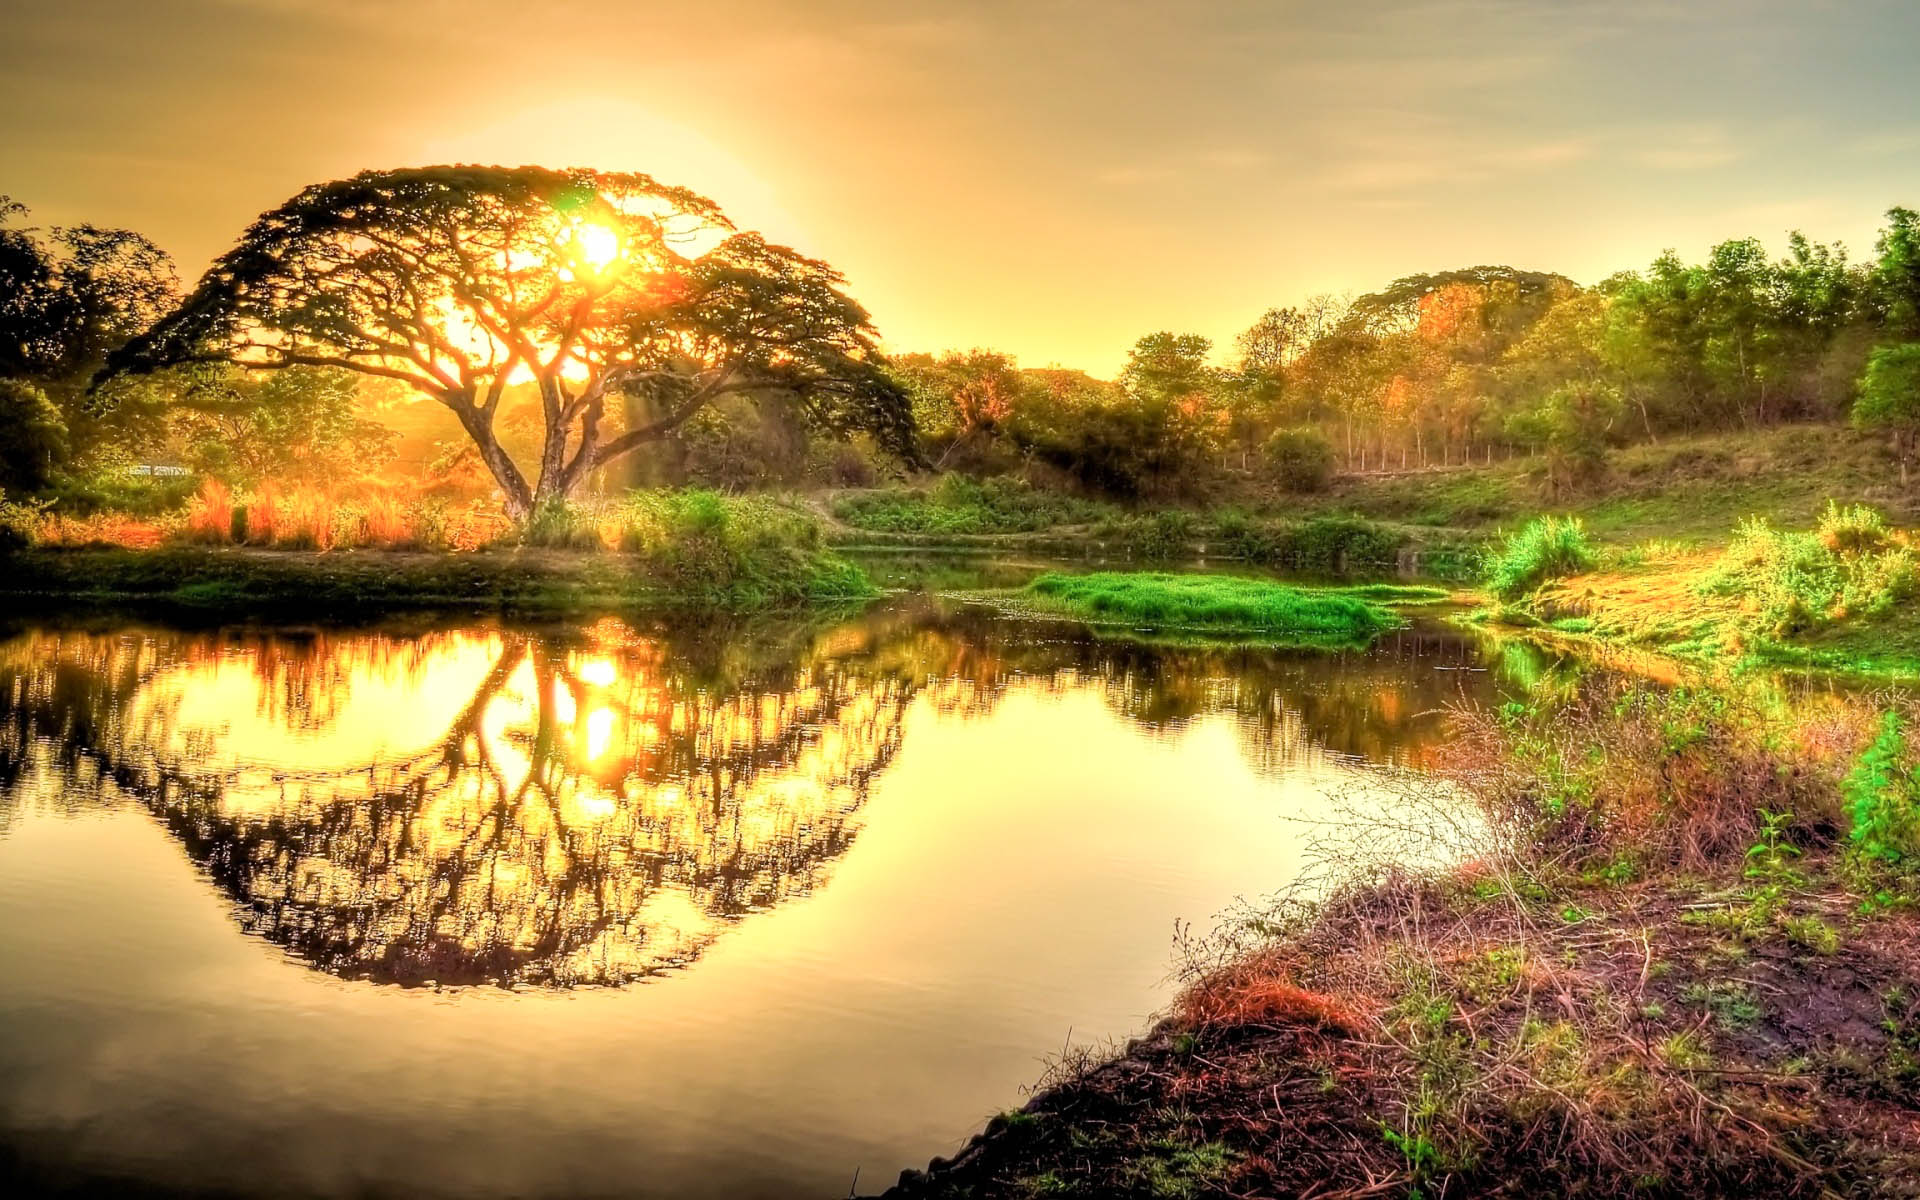 Hd Wallpapers Beautiful Wallpapers: Beautiful Sunrise Wallpapers 2015 (High Definition)